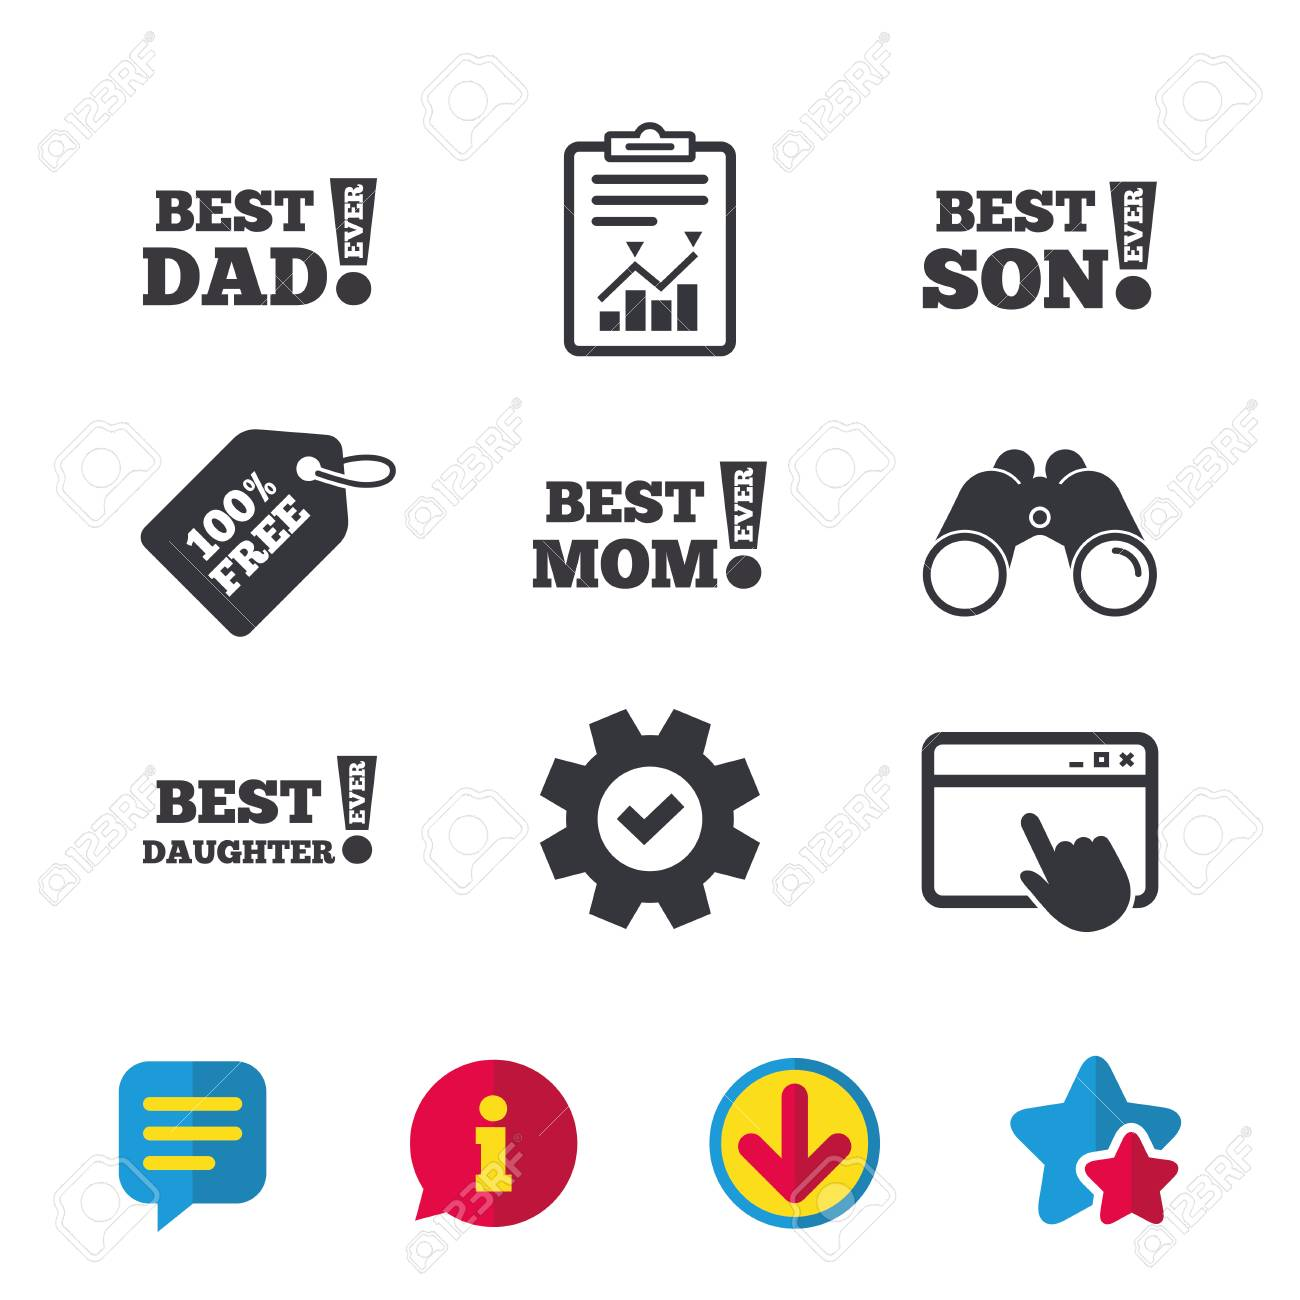 Best mom and dad son and daughter icons awards with exclamation best mom and dad son and daughter icons awards with exclamation mark symbols biocorpaavc